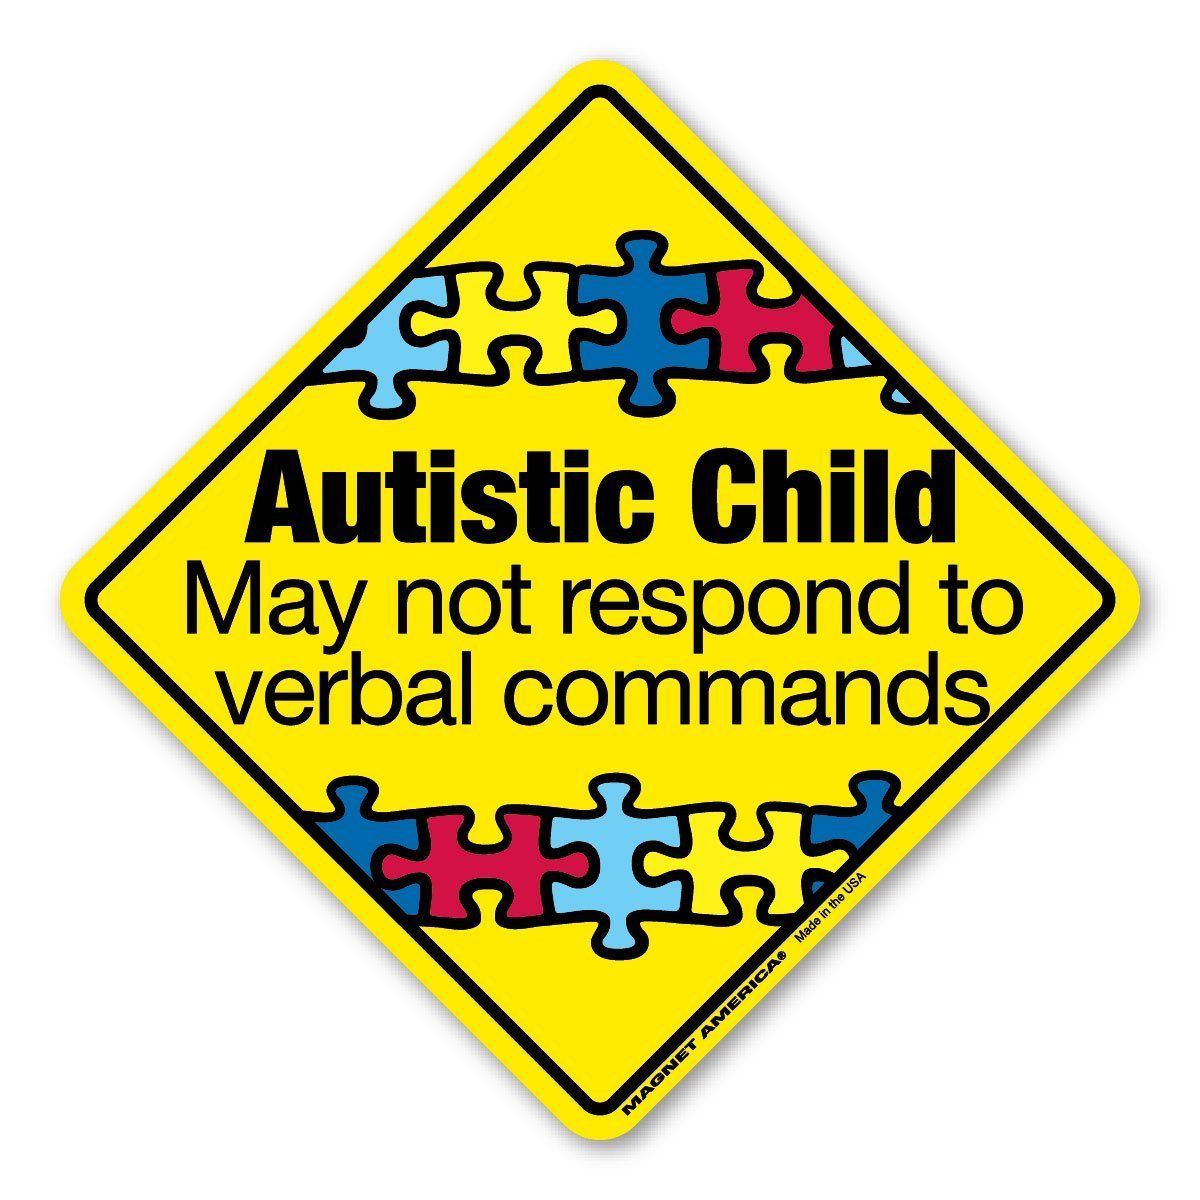 Autistic Child Emergency Automotive